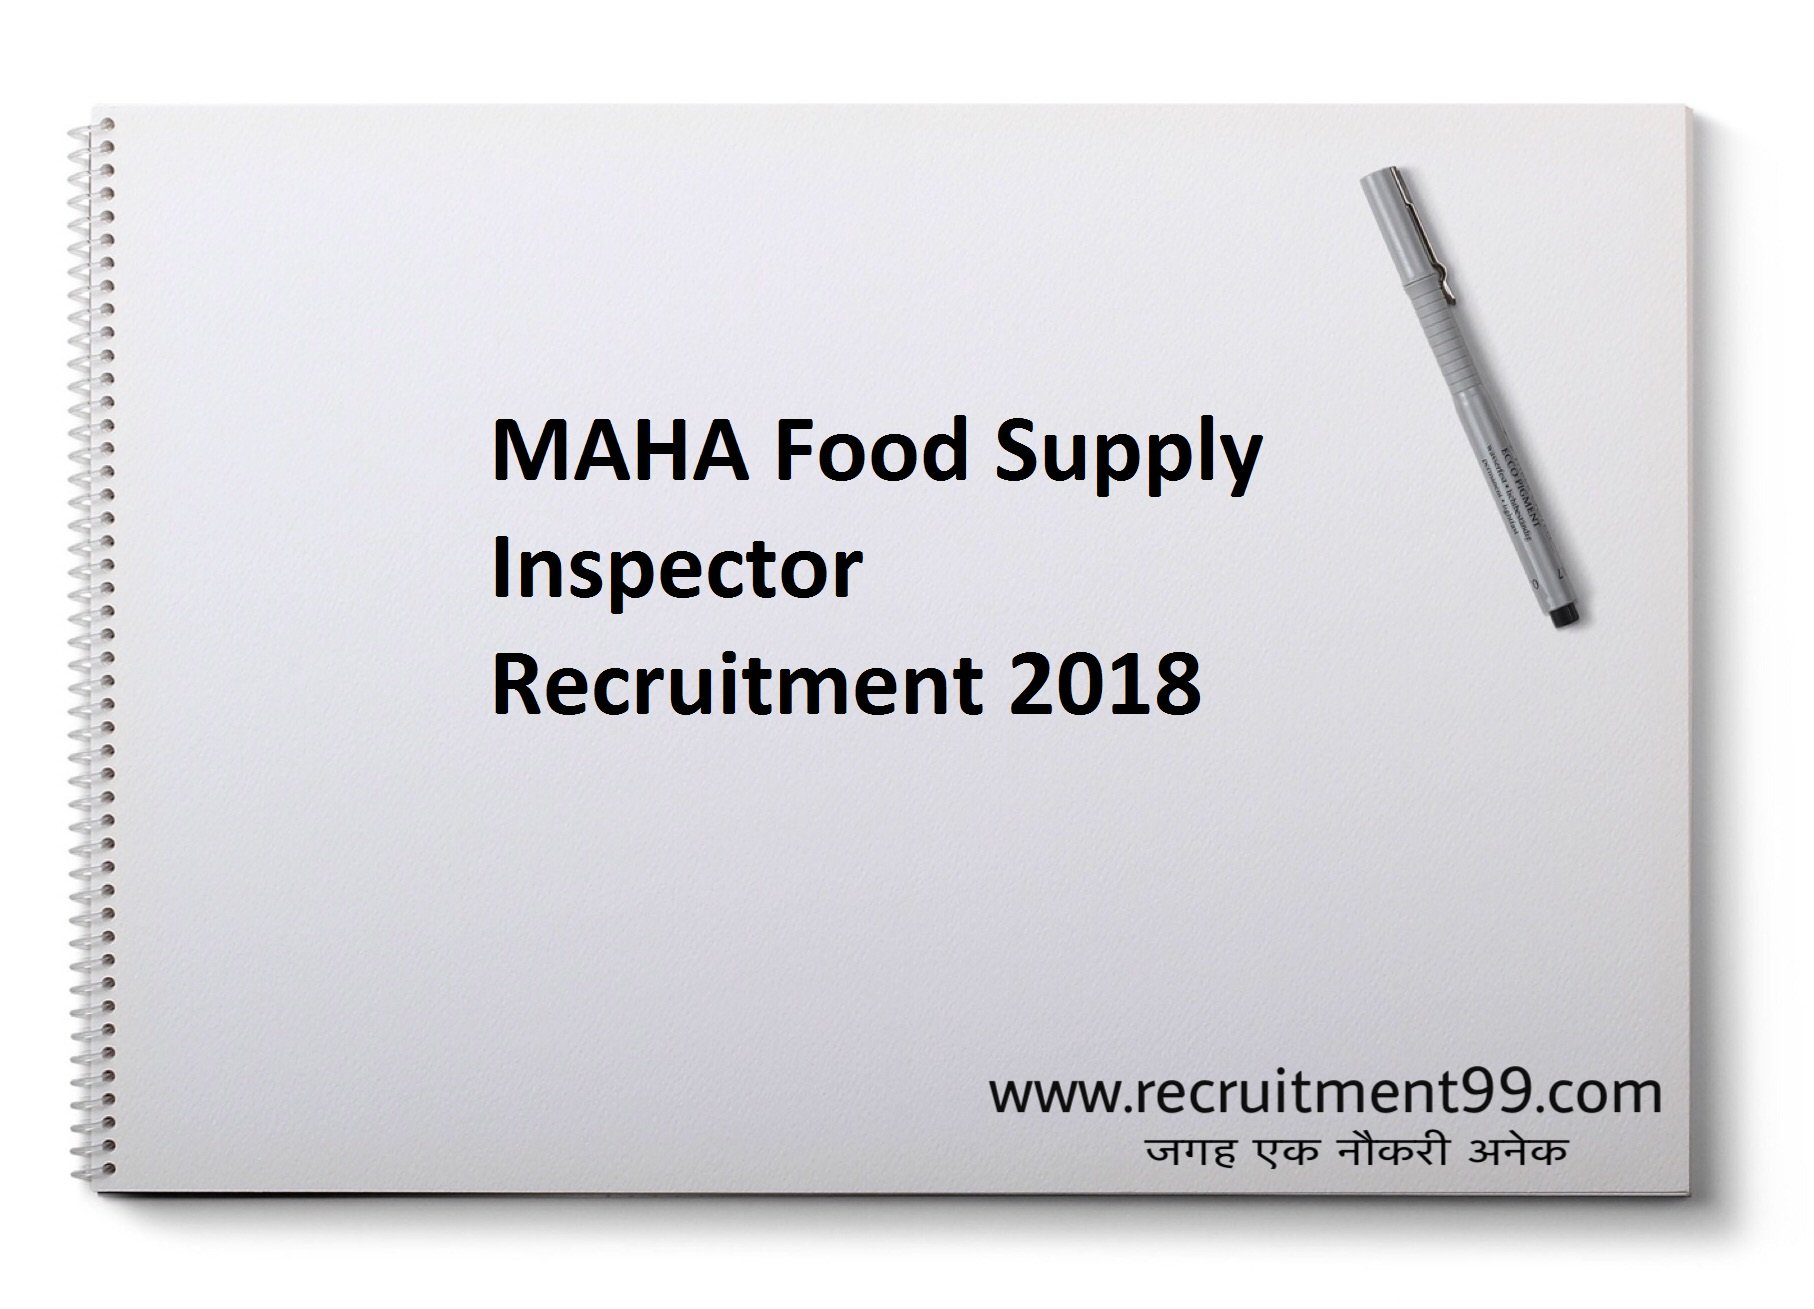 MAHA Food Supply Inspector Recruitment Admit Card Result 2018